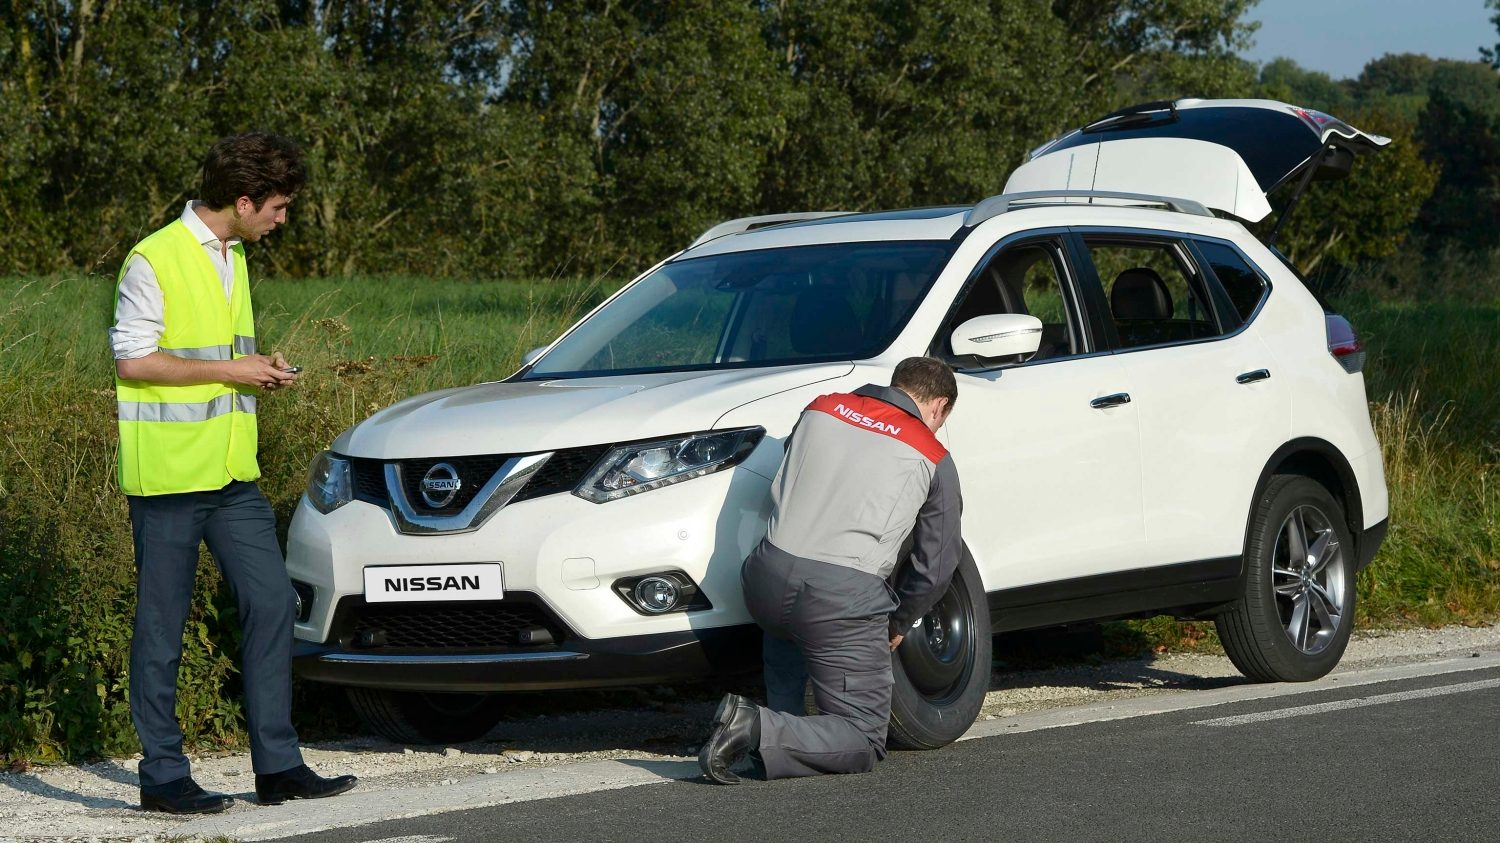 Nissan roadside assistance